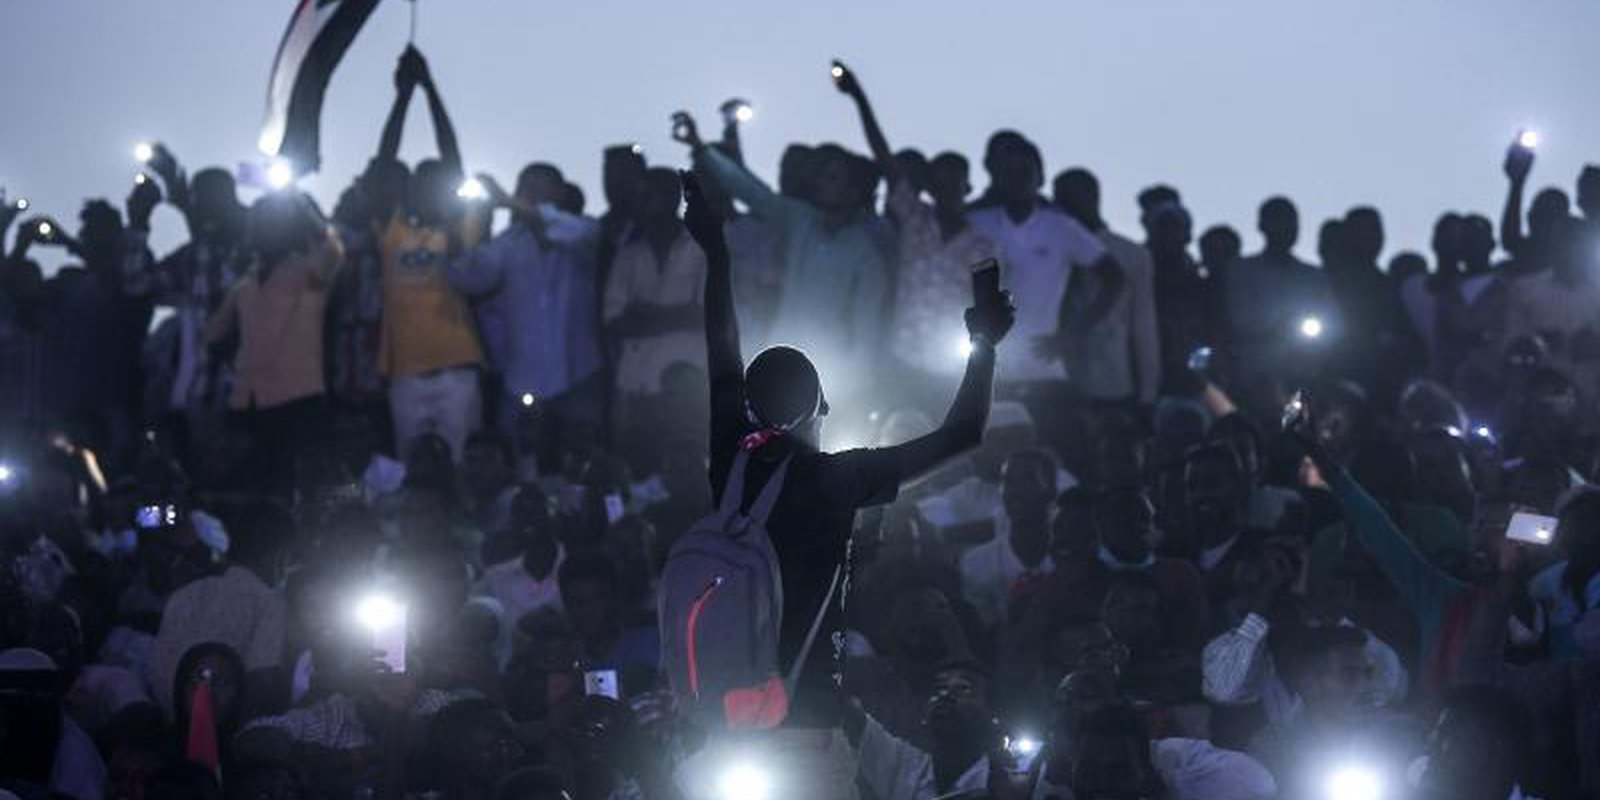 Sudanese protesters open their smartphones lights as they gather for a million-strong march outside the army headquarters in Khartoum on April 25, 2019. Photo by OZAN KOSE/AFP/Getty Images.